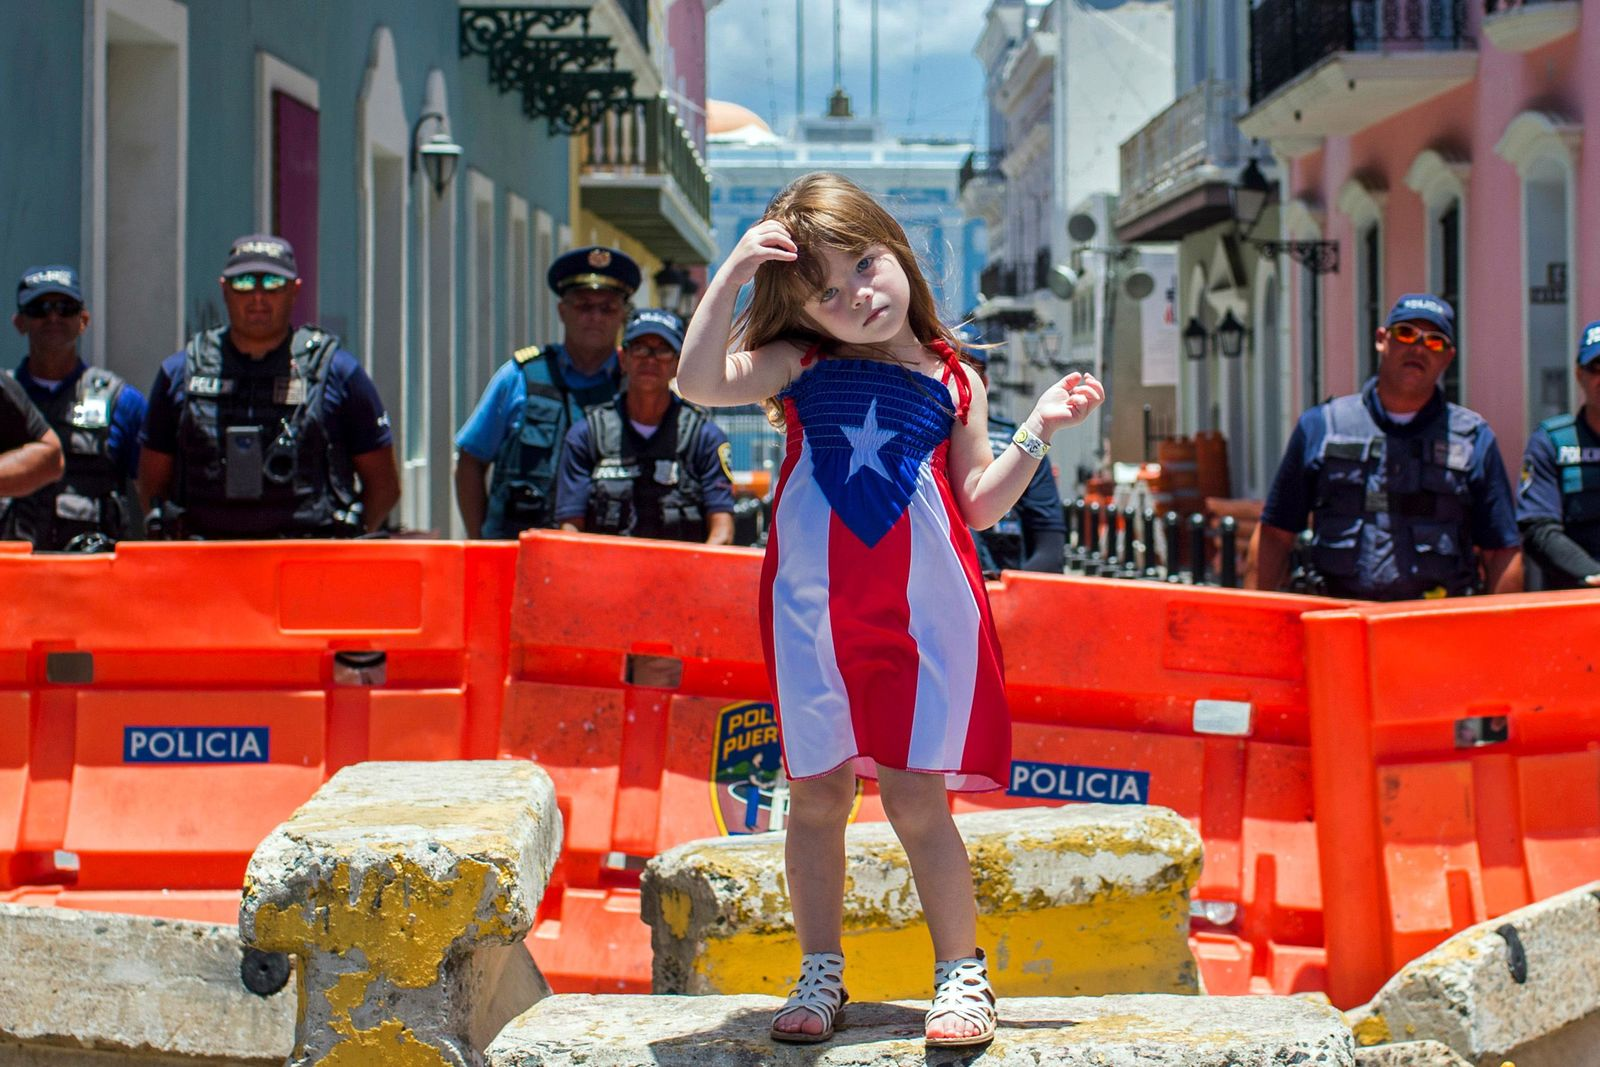 A girl wearing a dress featuring the Puerto Rican flag stands in front of police blocking the road leading to the La Fortaleza governor's mansion in San Juan, Puerto Rico, Thursday, July 18, 2019. (AP Photo/Dennis M. Rivera Pichardo)